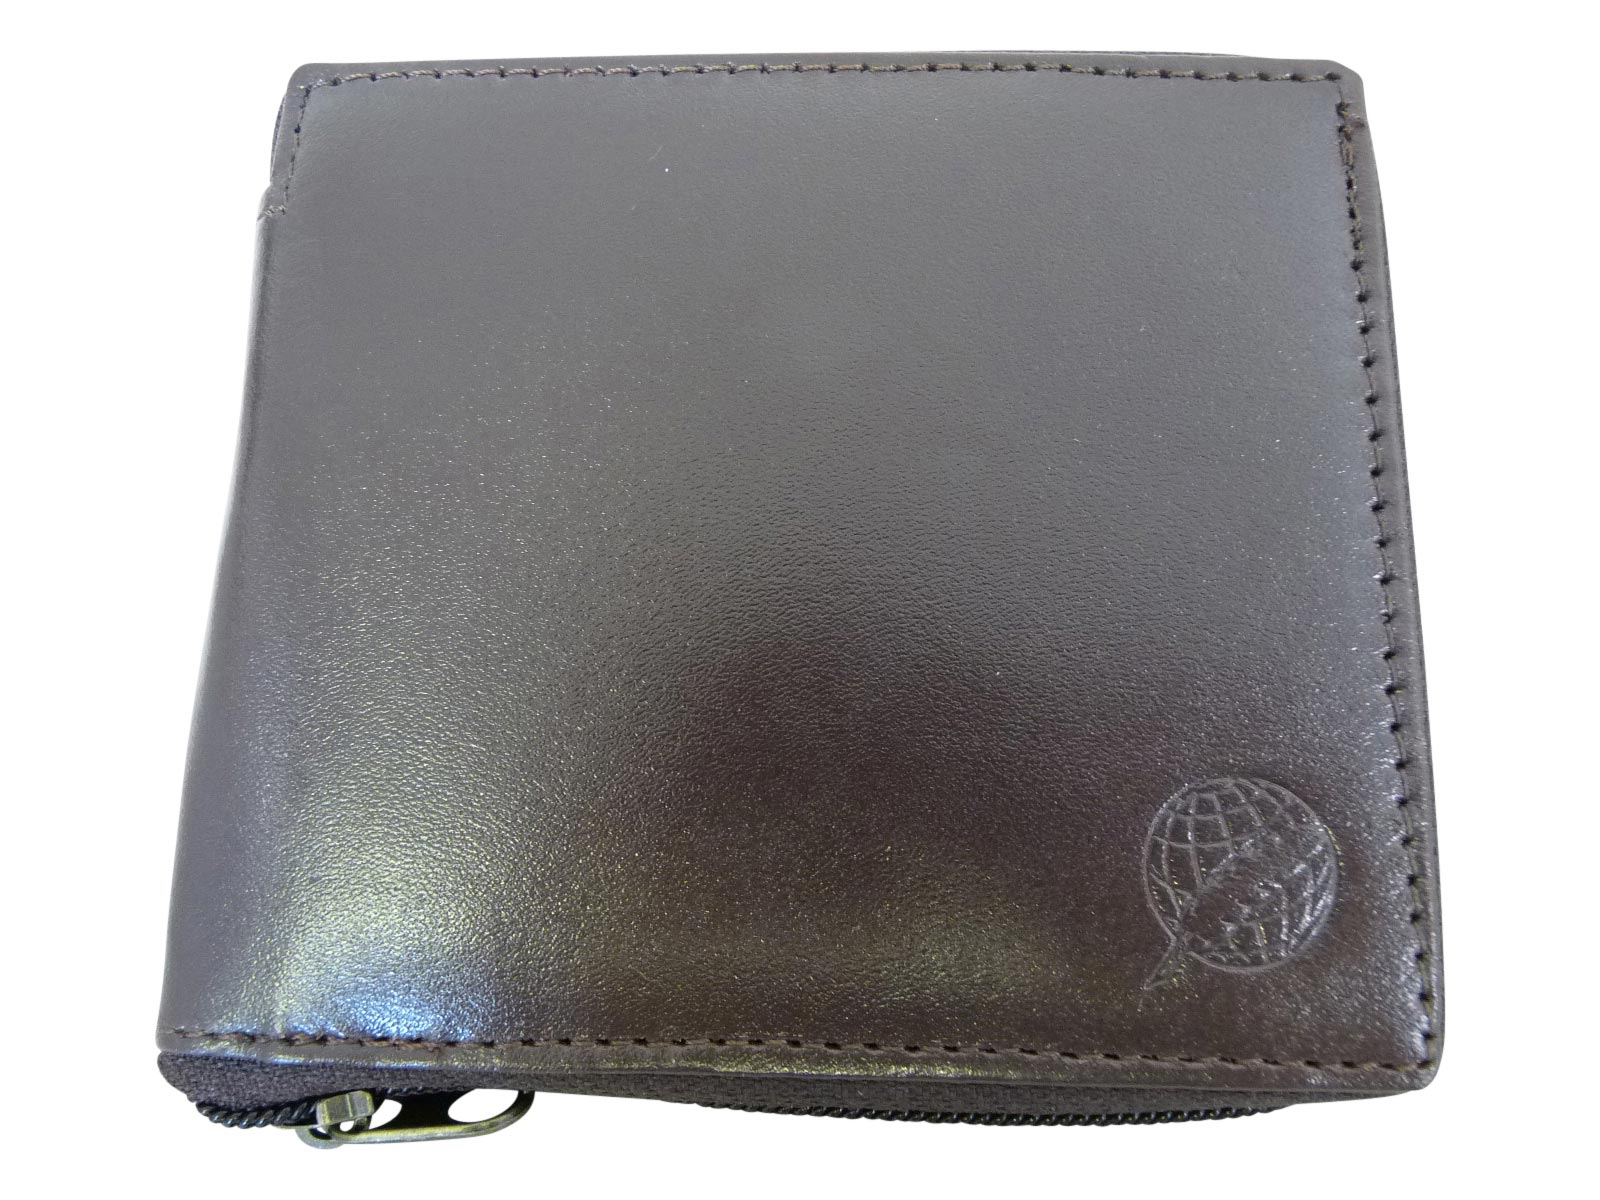 Zip around mens leather wallet RL184DB dark brown front view